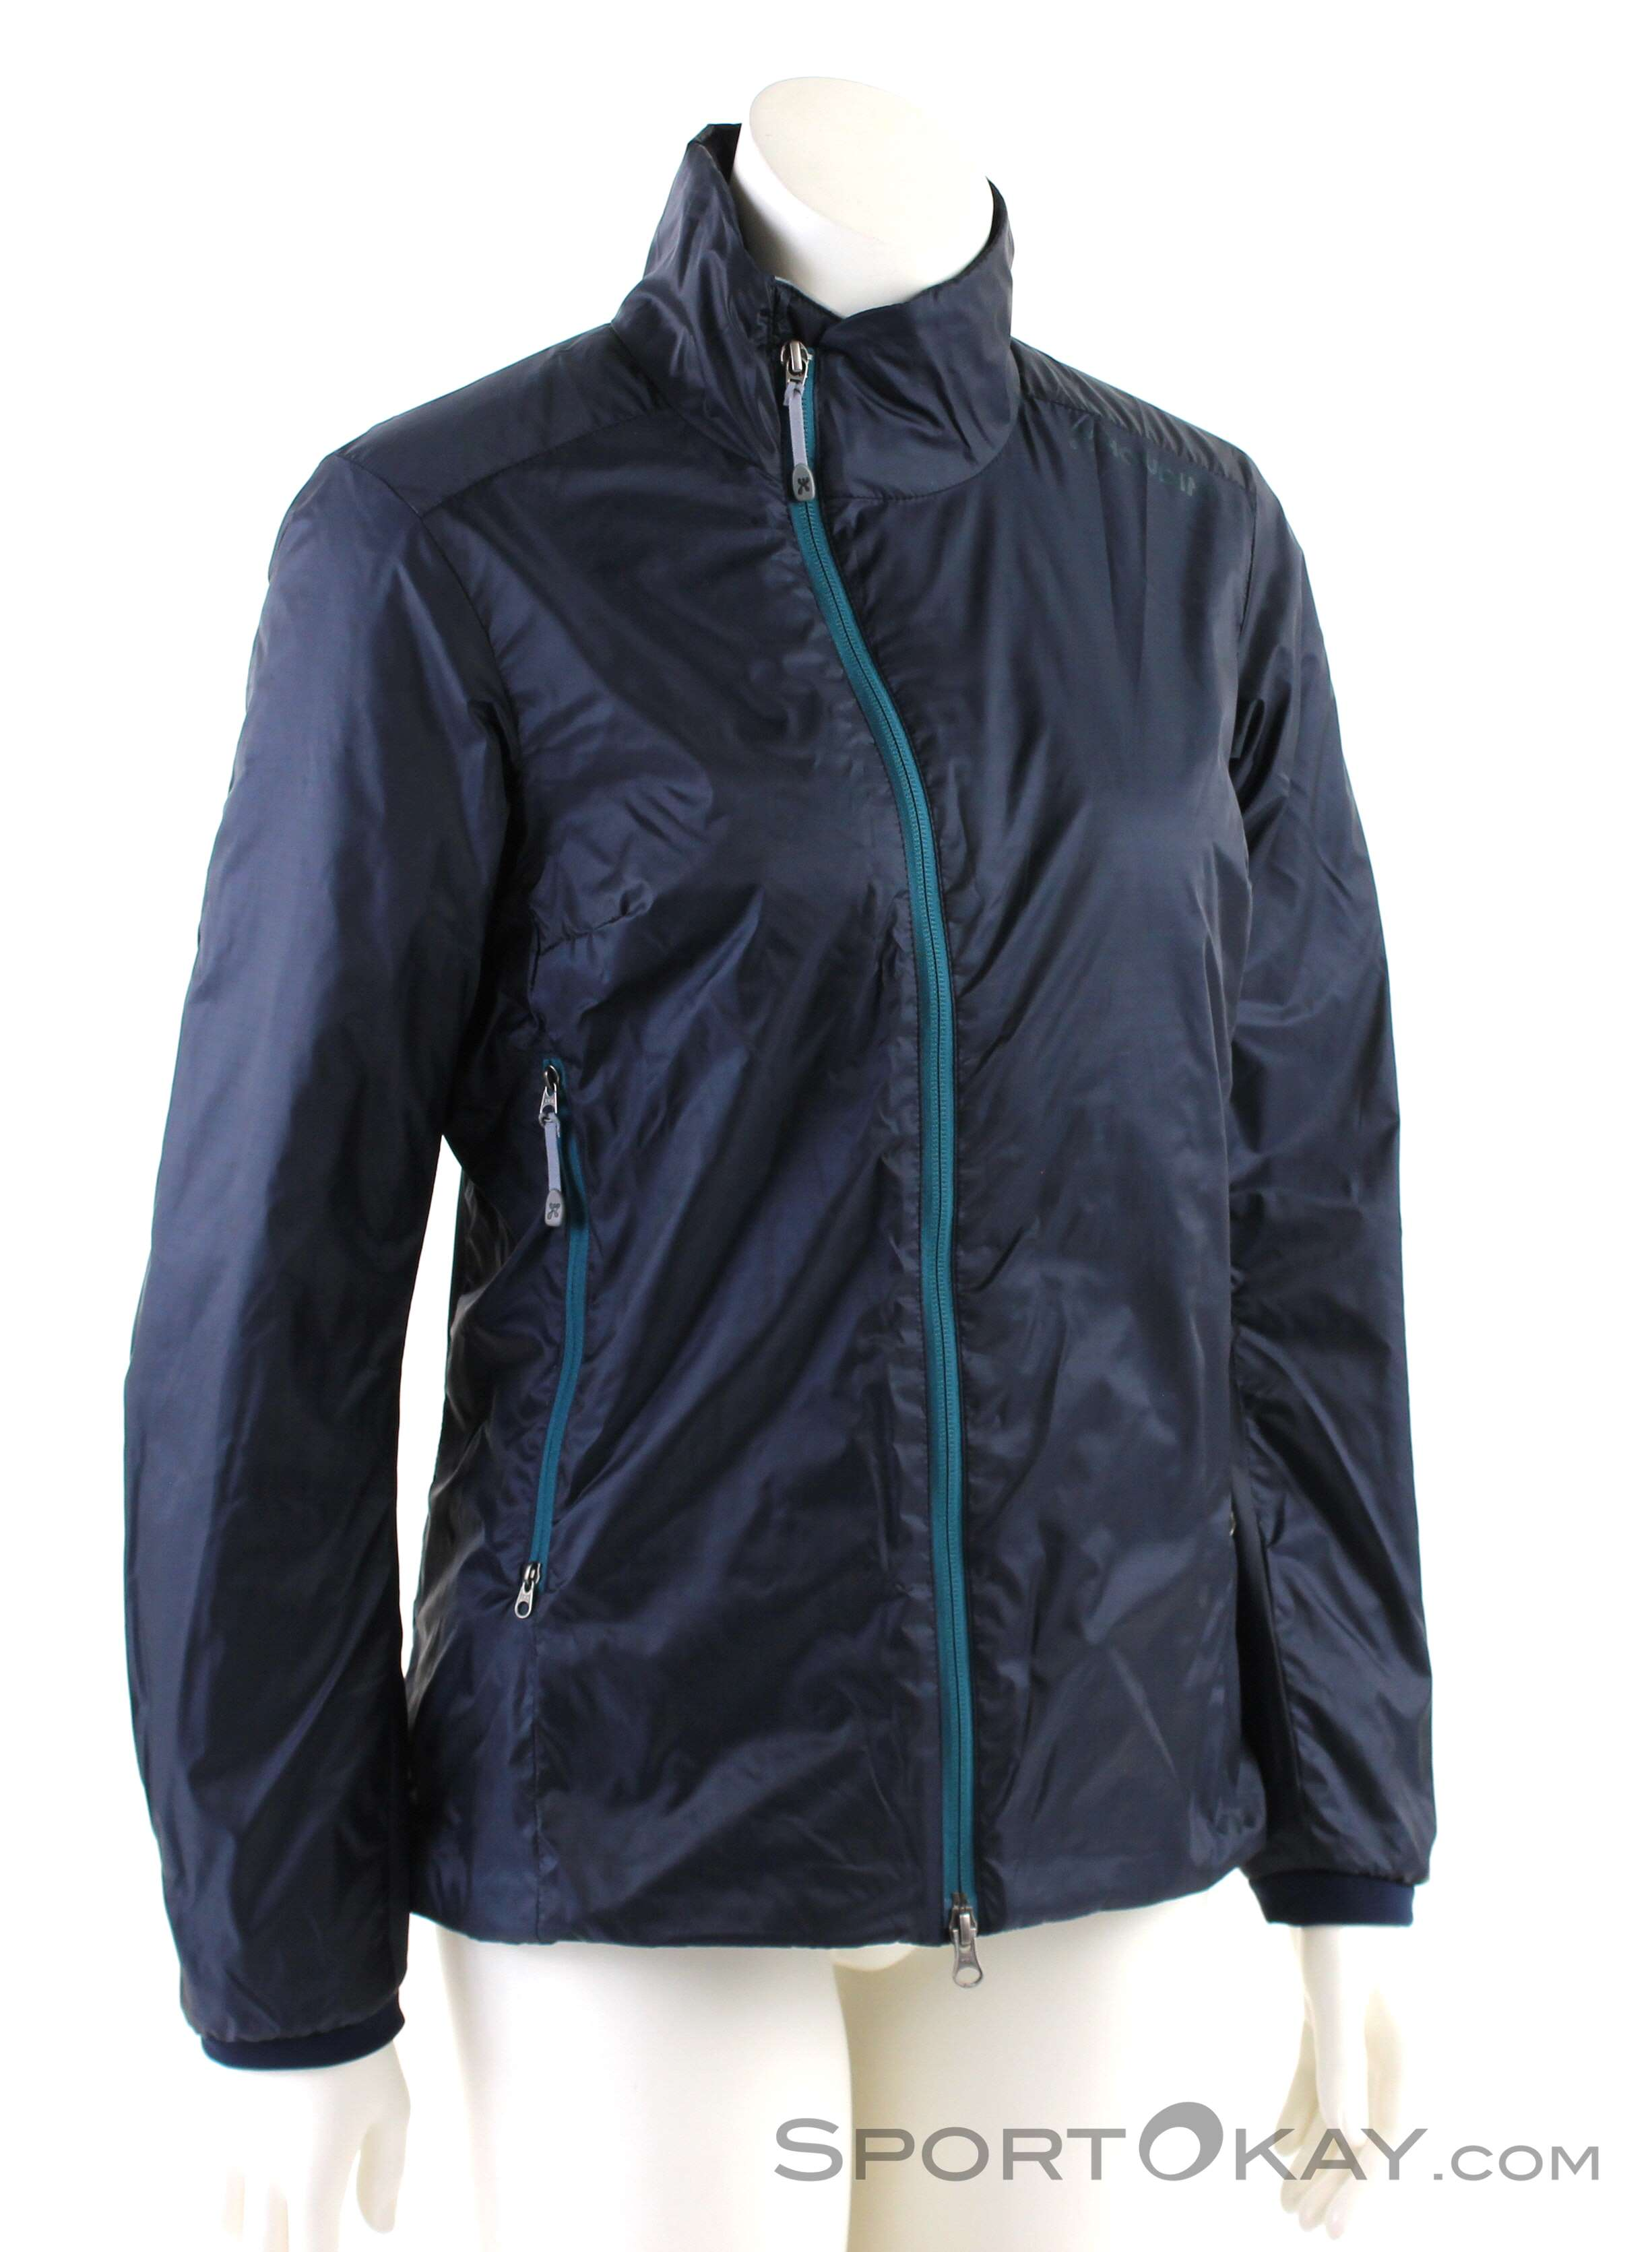 Houdini Fly Jacket Damen Outdoorjacke-Blau-M